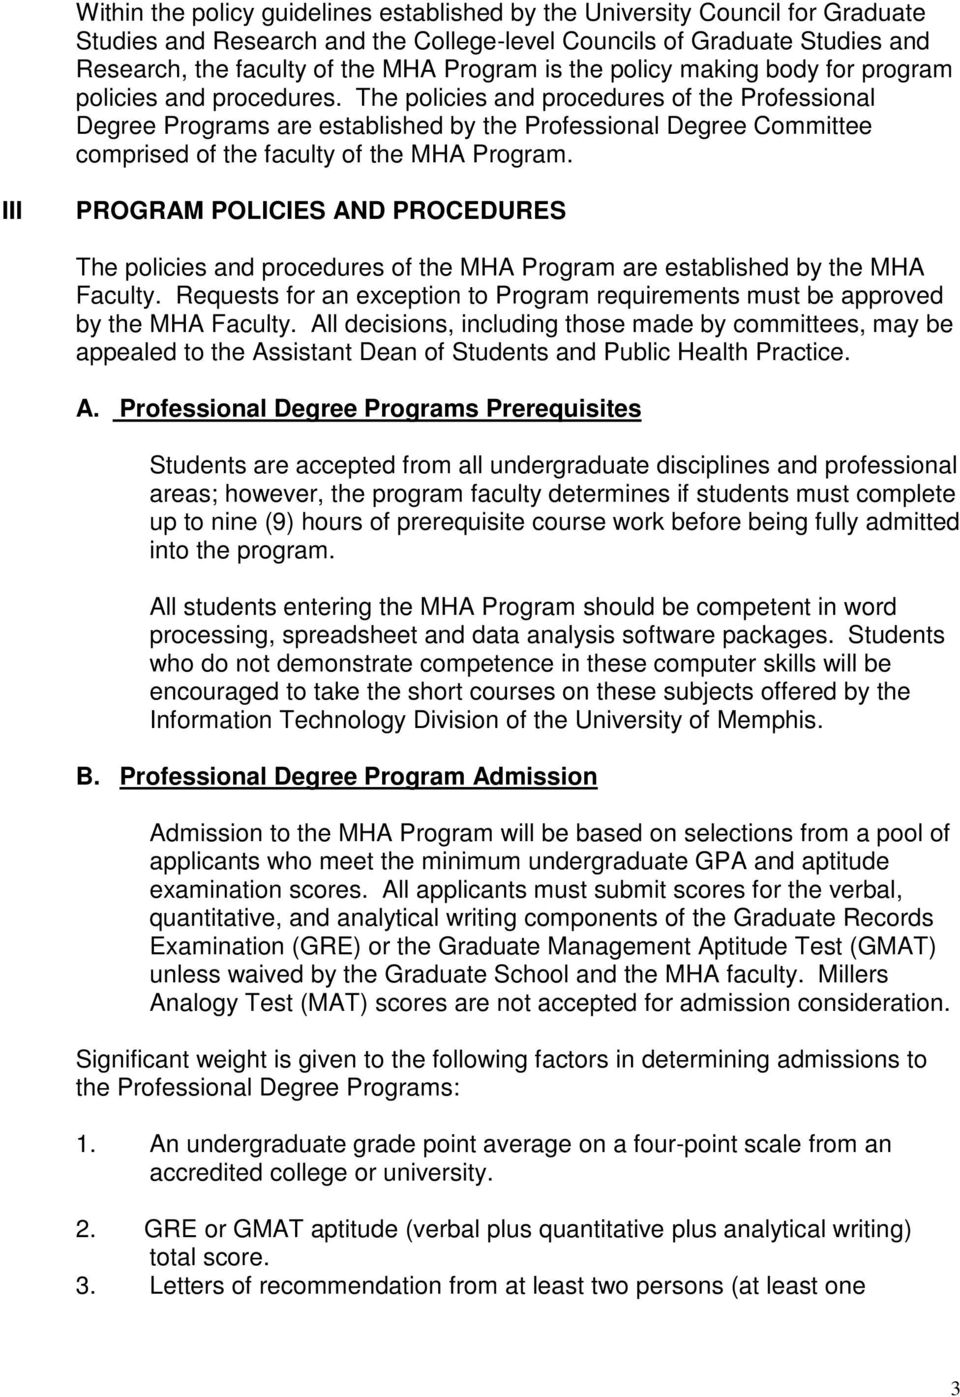 The policies and procedures of the Professional Degree Programs are established by the Professional Degree Committee comprised of the faculty of the MHA Program.